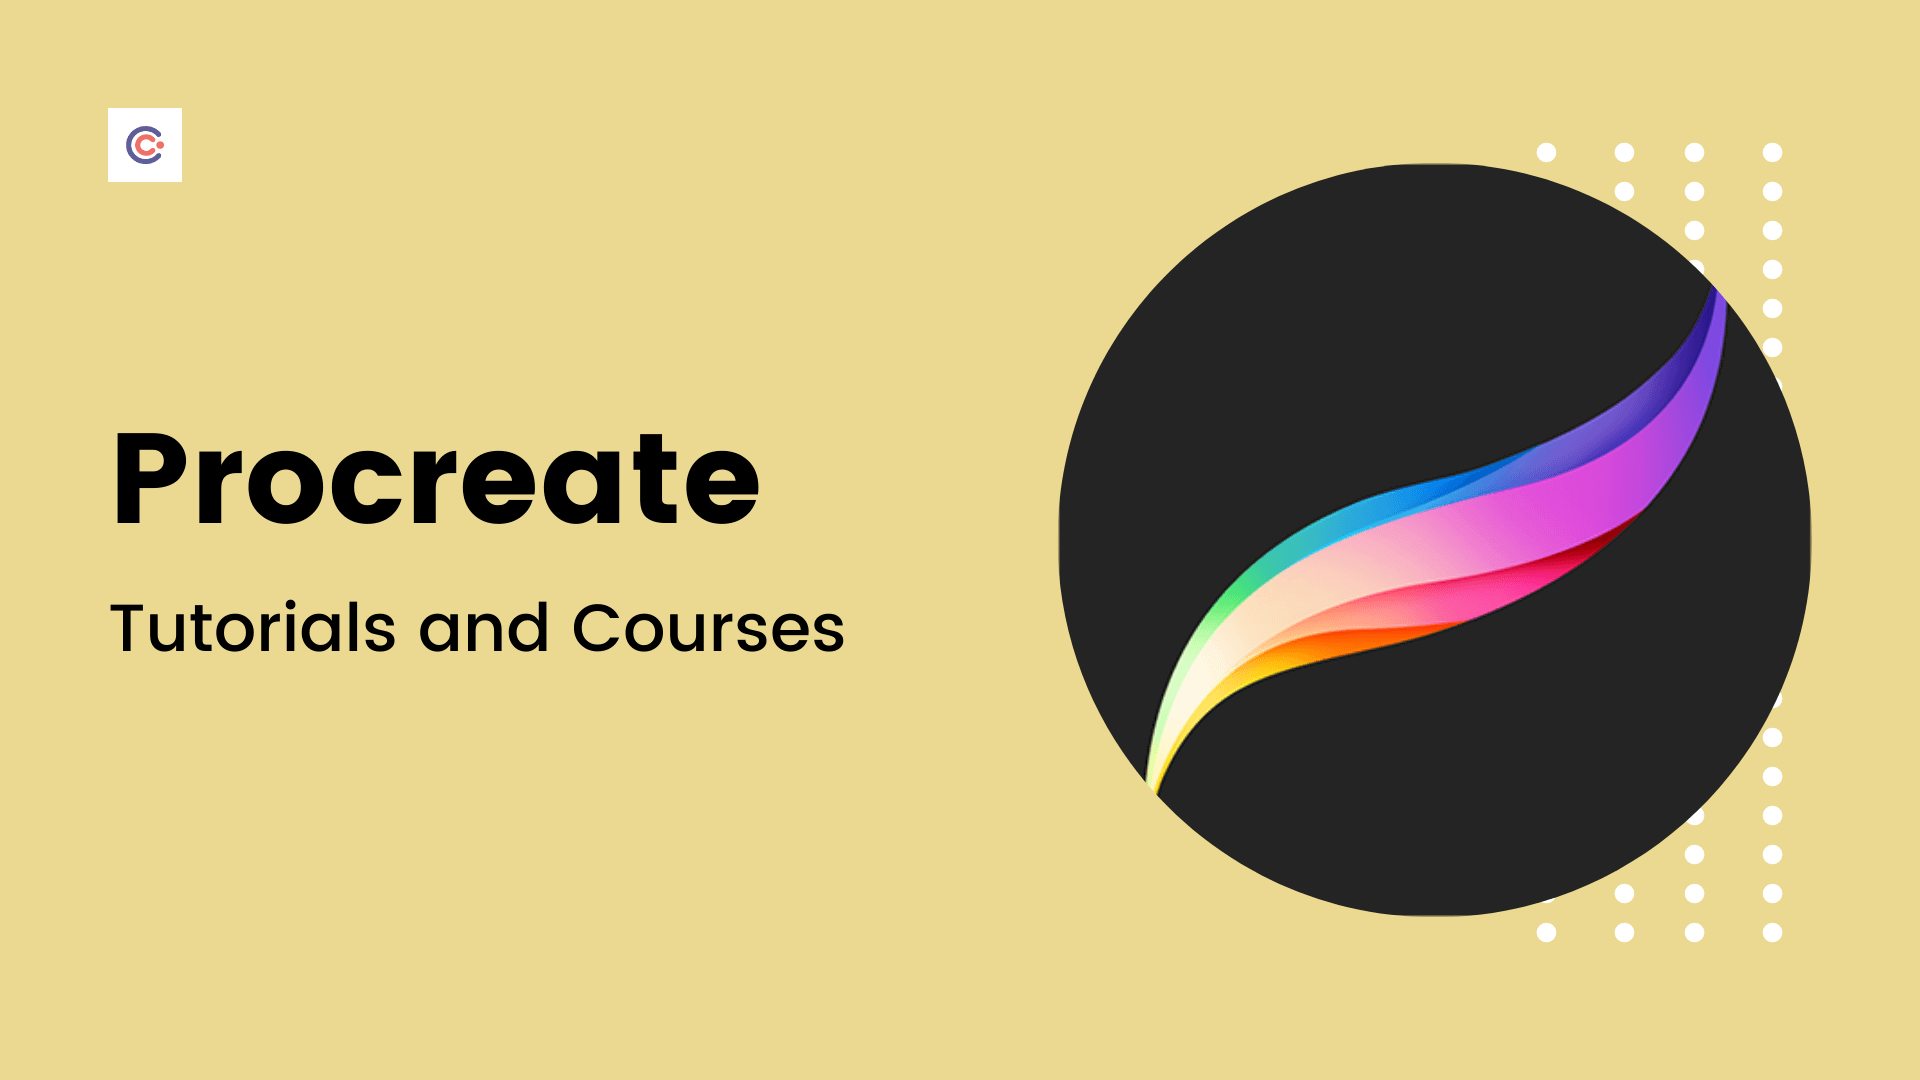 4 Best Procreate Courses and Tutorials - Learn Procreate Online